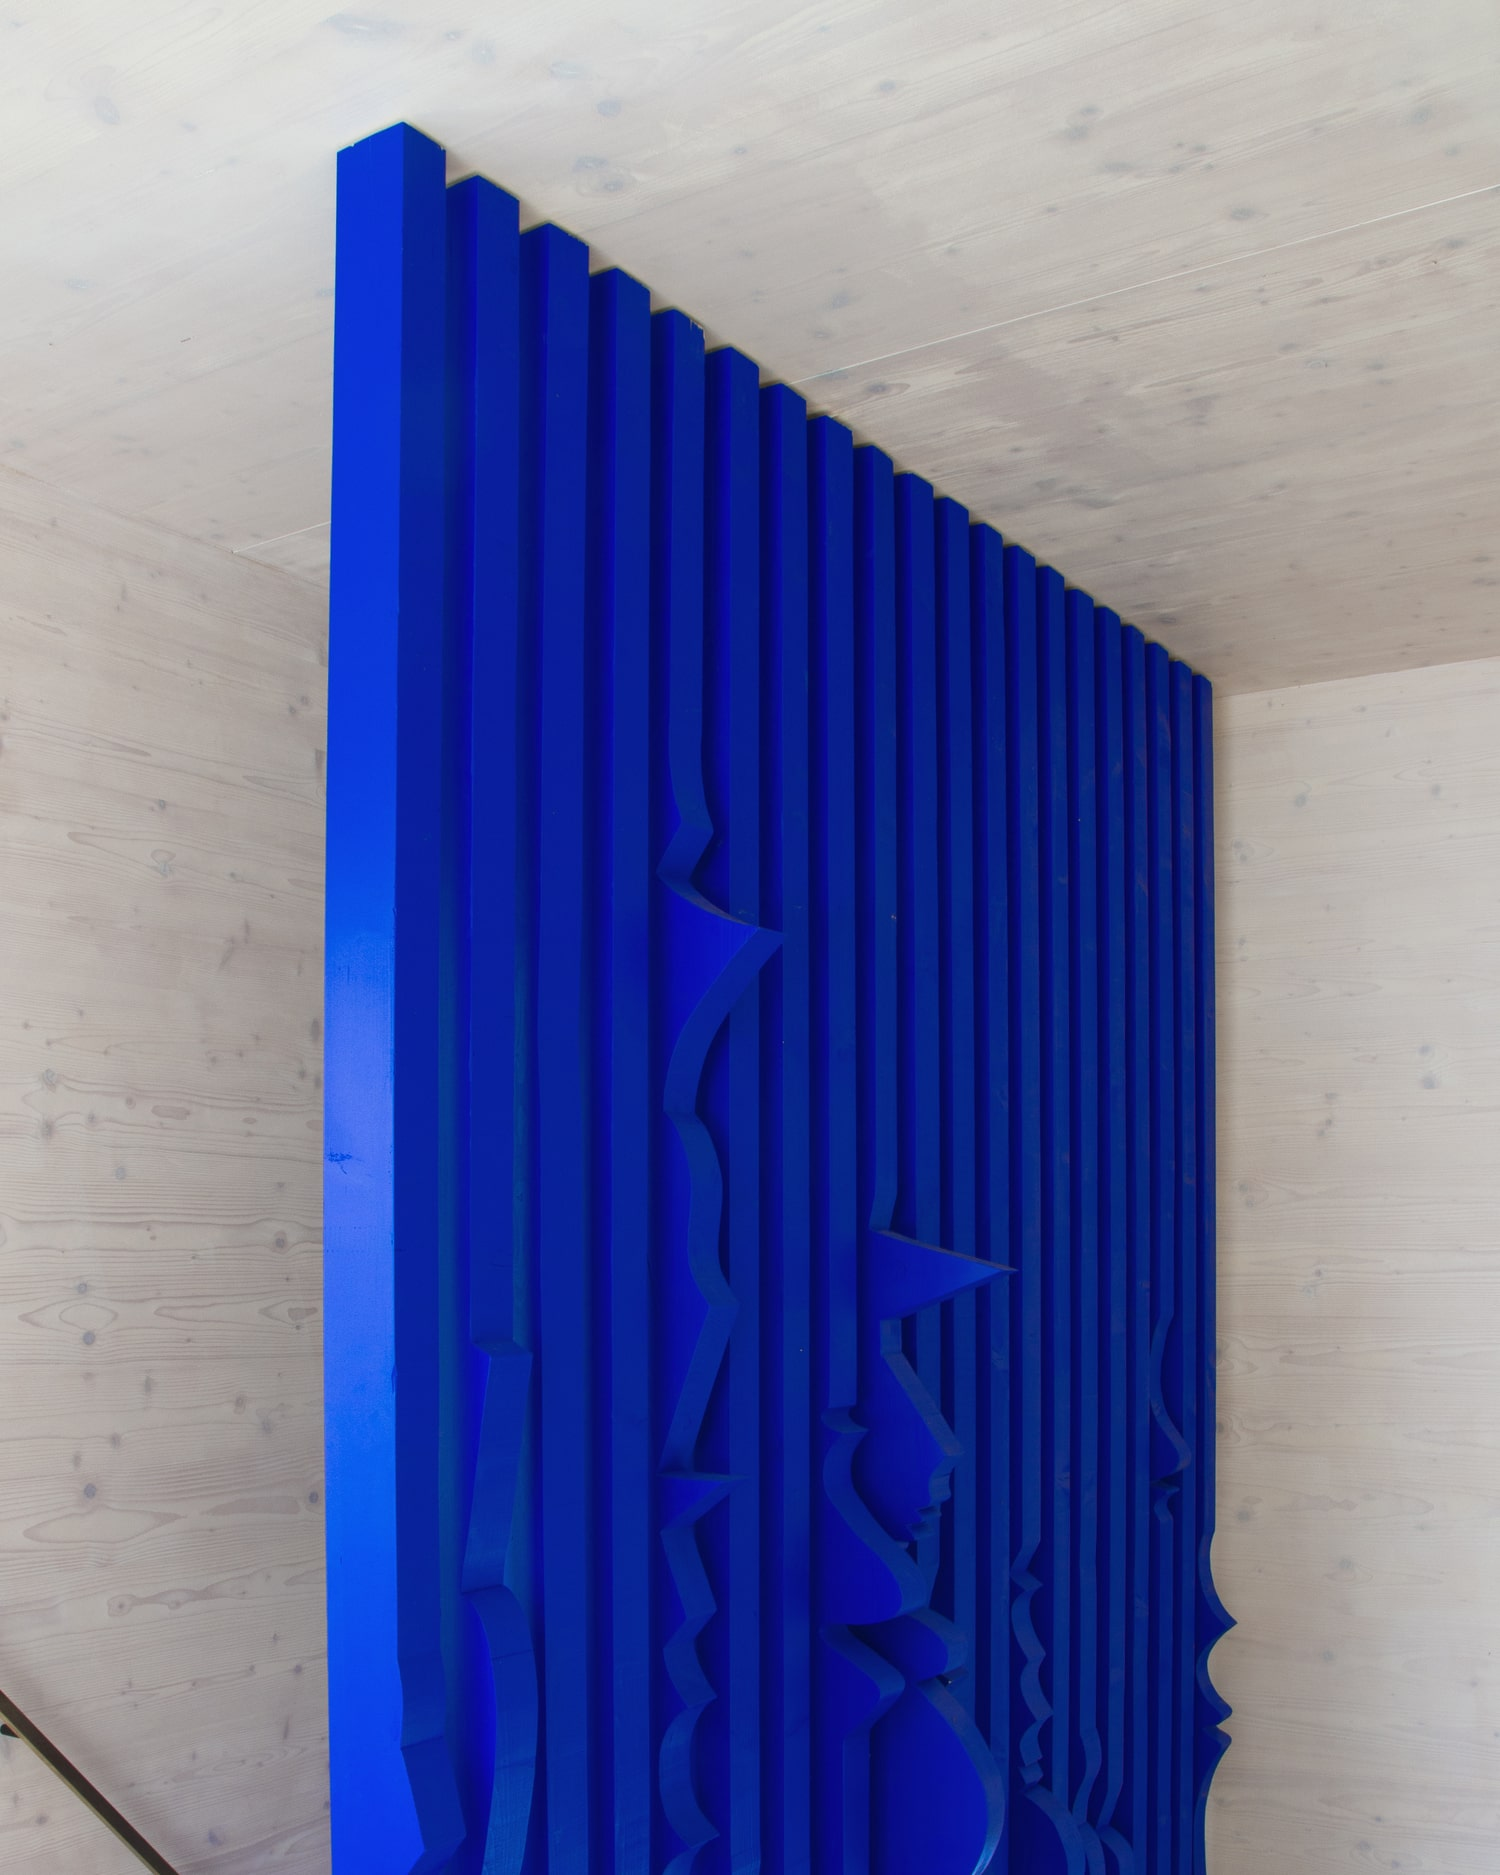 ultramarine staircase wall for private residence in milovice made of solid wood interior design by jiri krejcirik_3